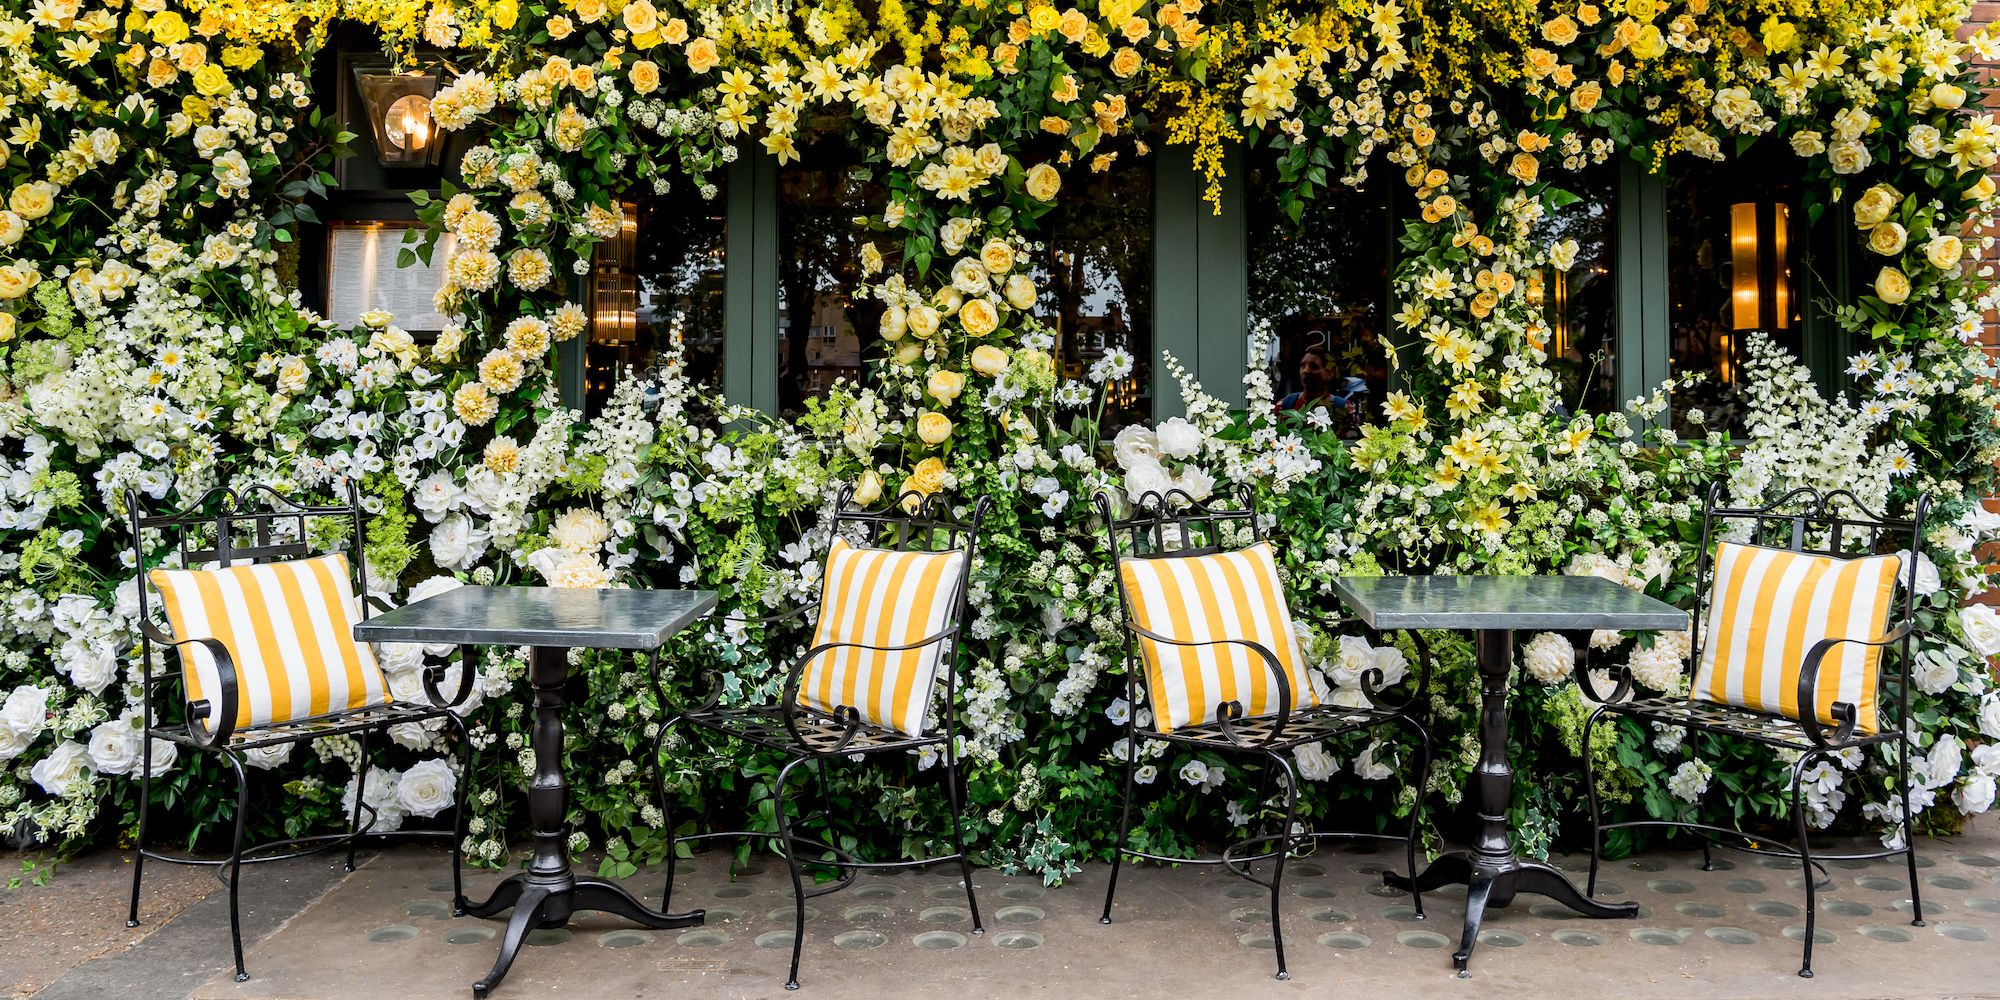 How To Enjoy The Chelsea Flower Show